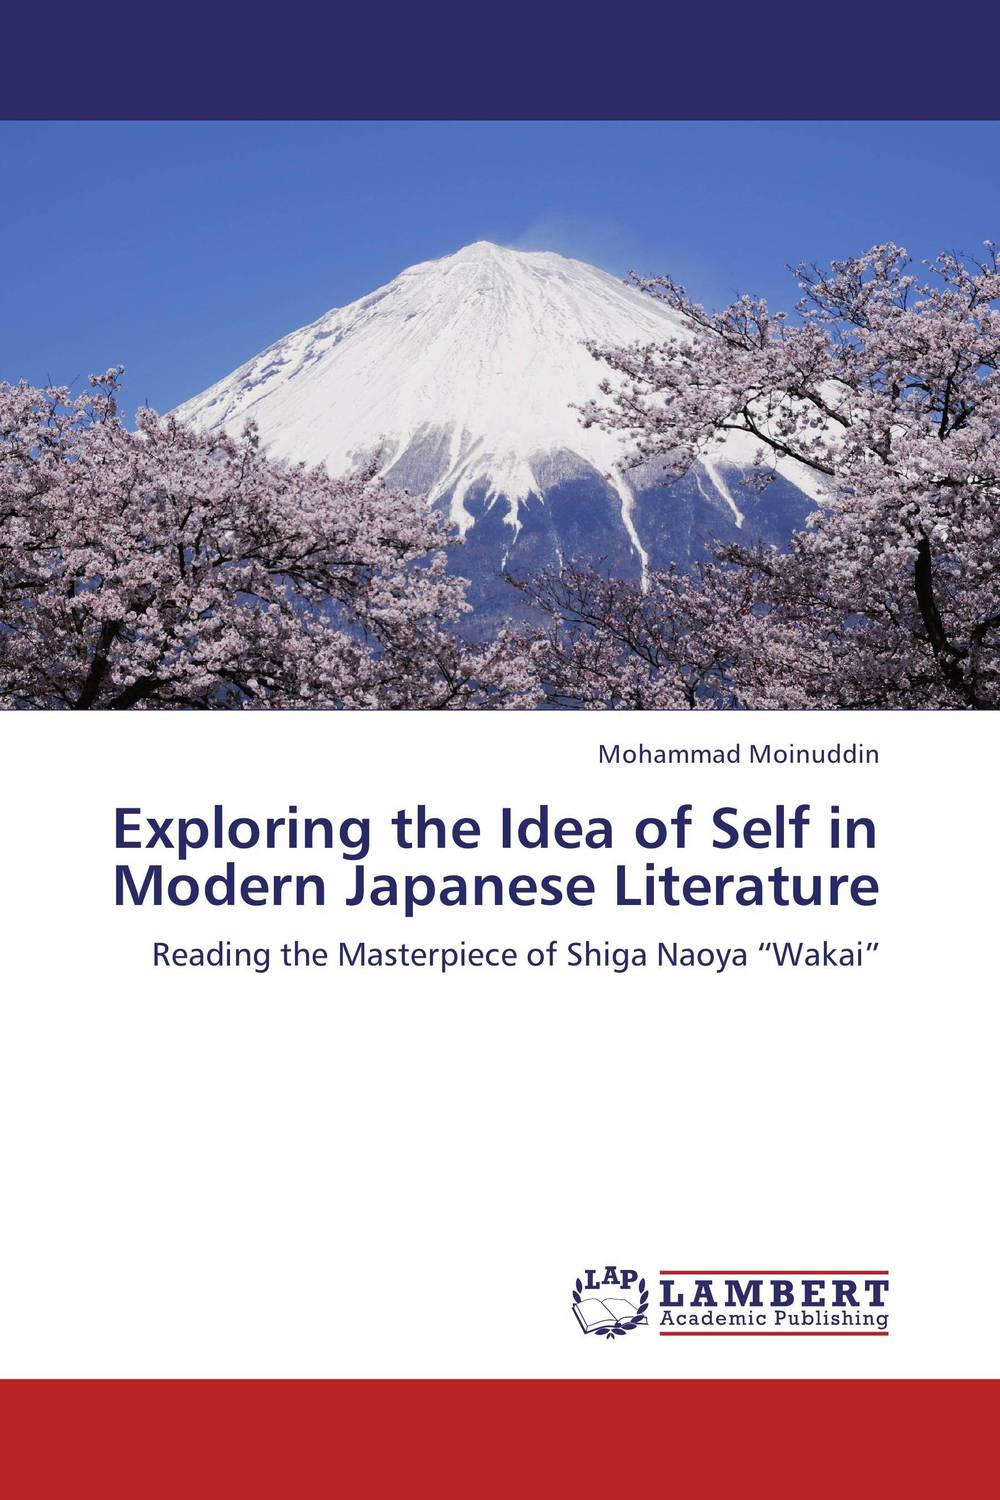 Exploring the Idea of Self in Modern Japanese Literature